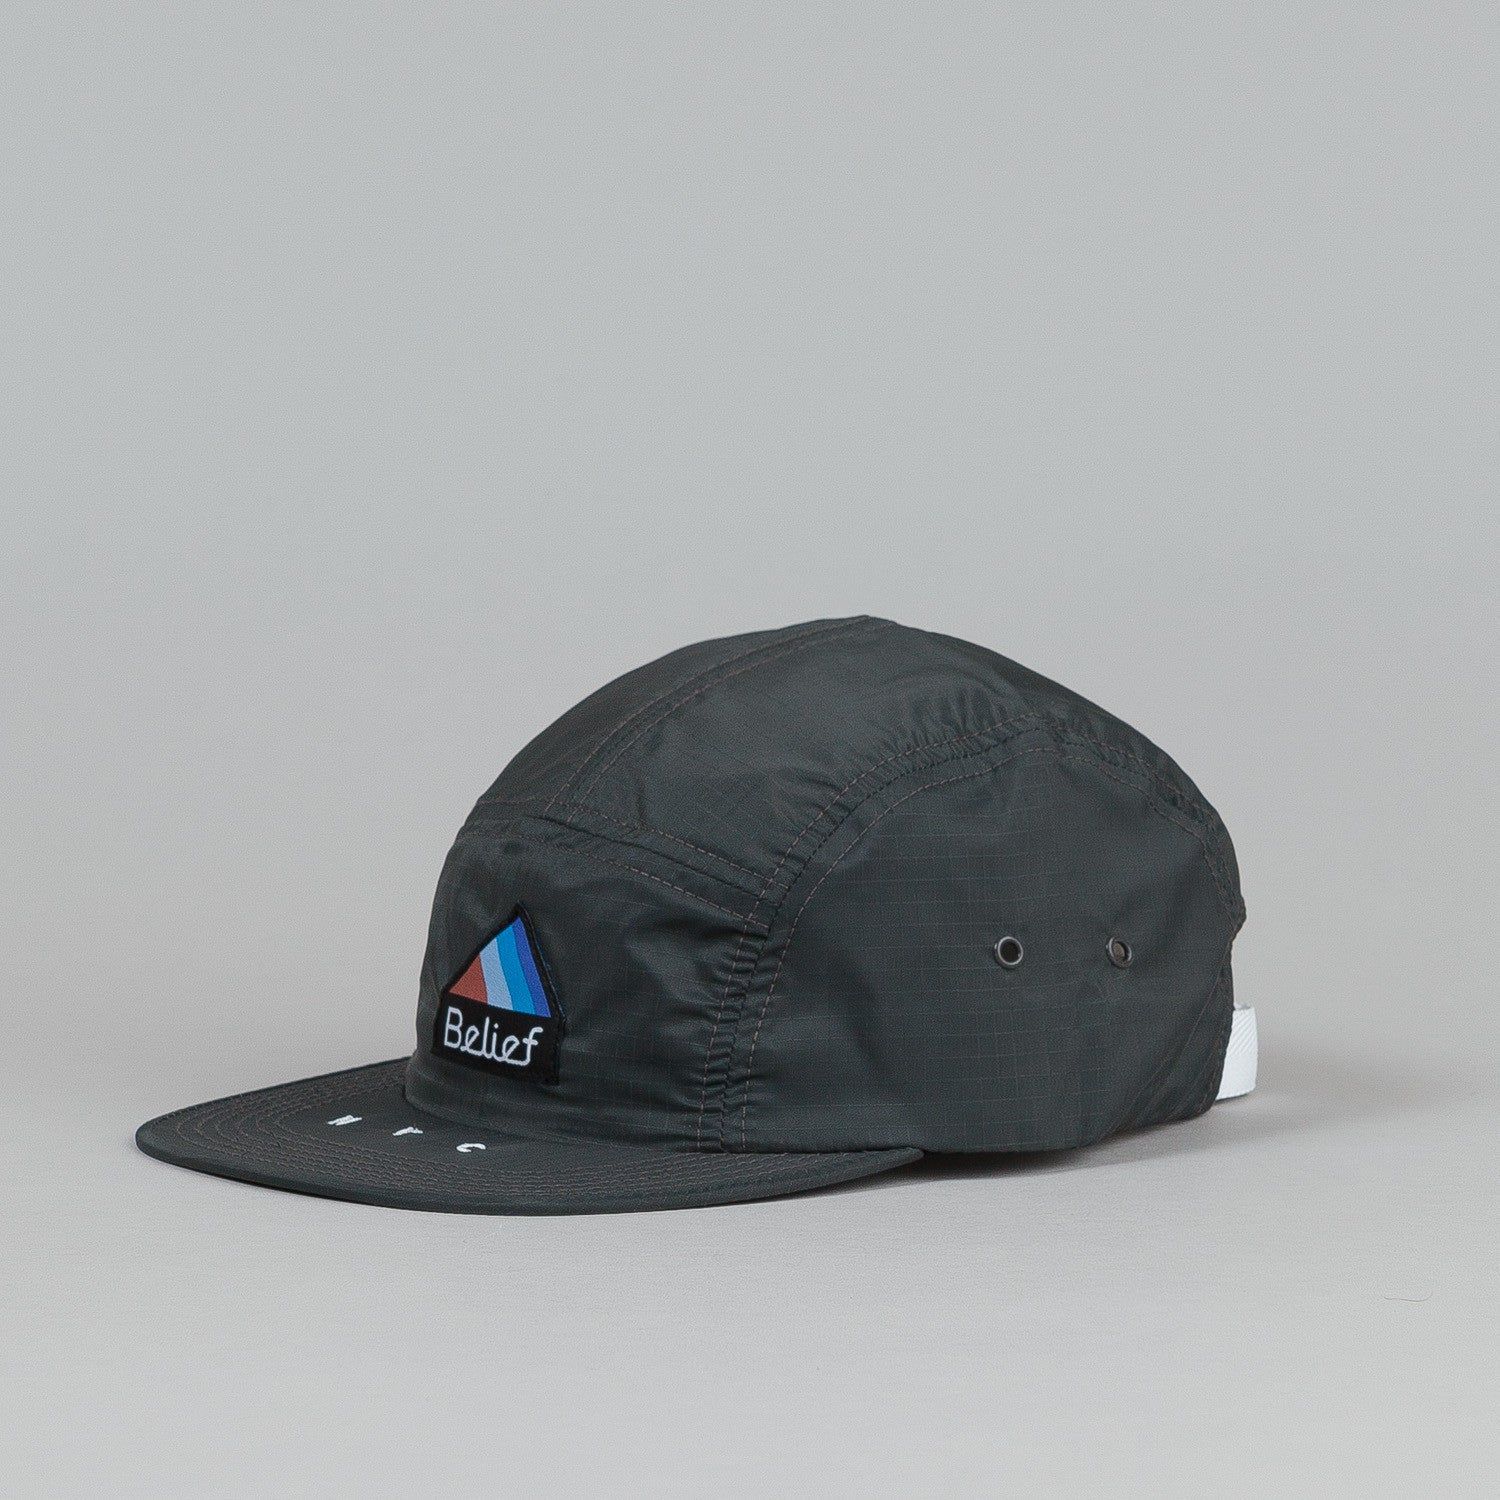 Belief Parachute 5 Panel Cap Charcoal